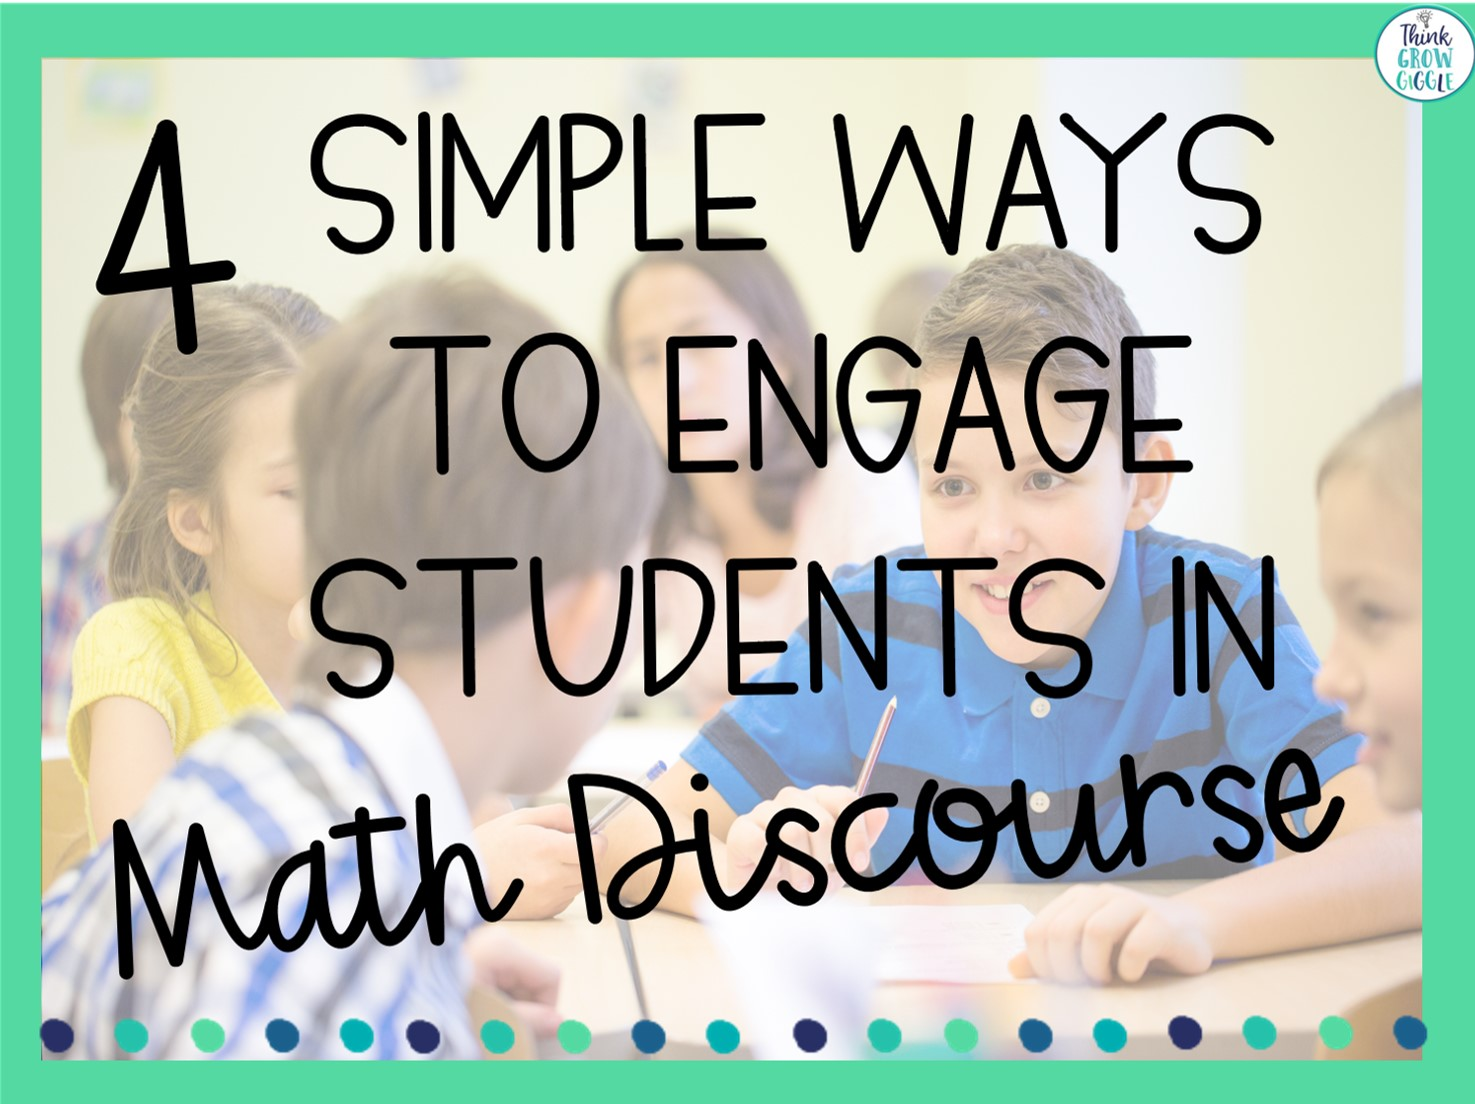 hight resolution of 4 Simple Ways to Engage Students in Meaningful Mathematical Discourse -  Think Grow Giggle